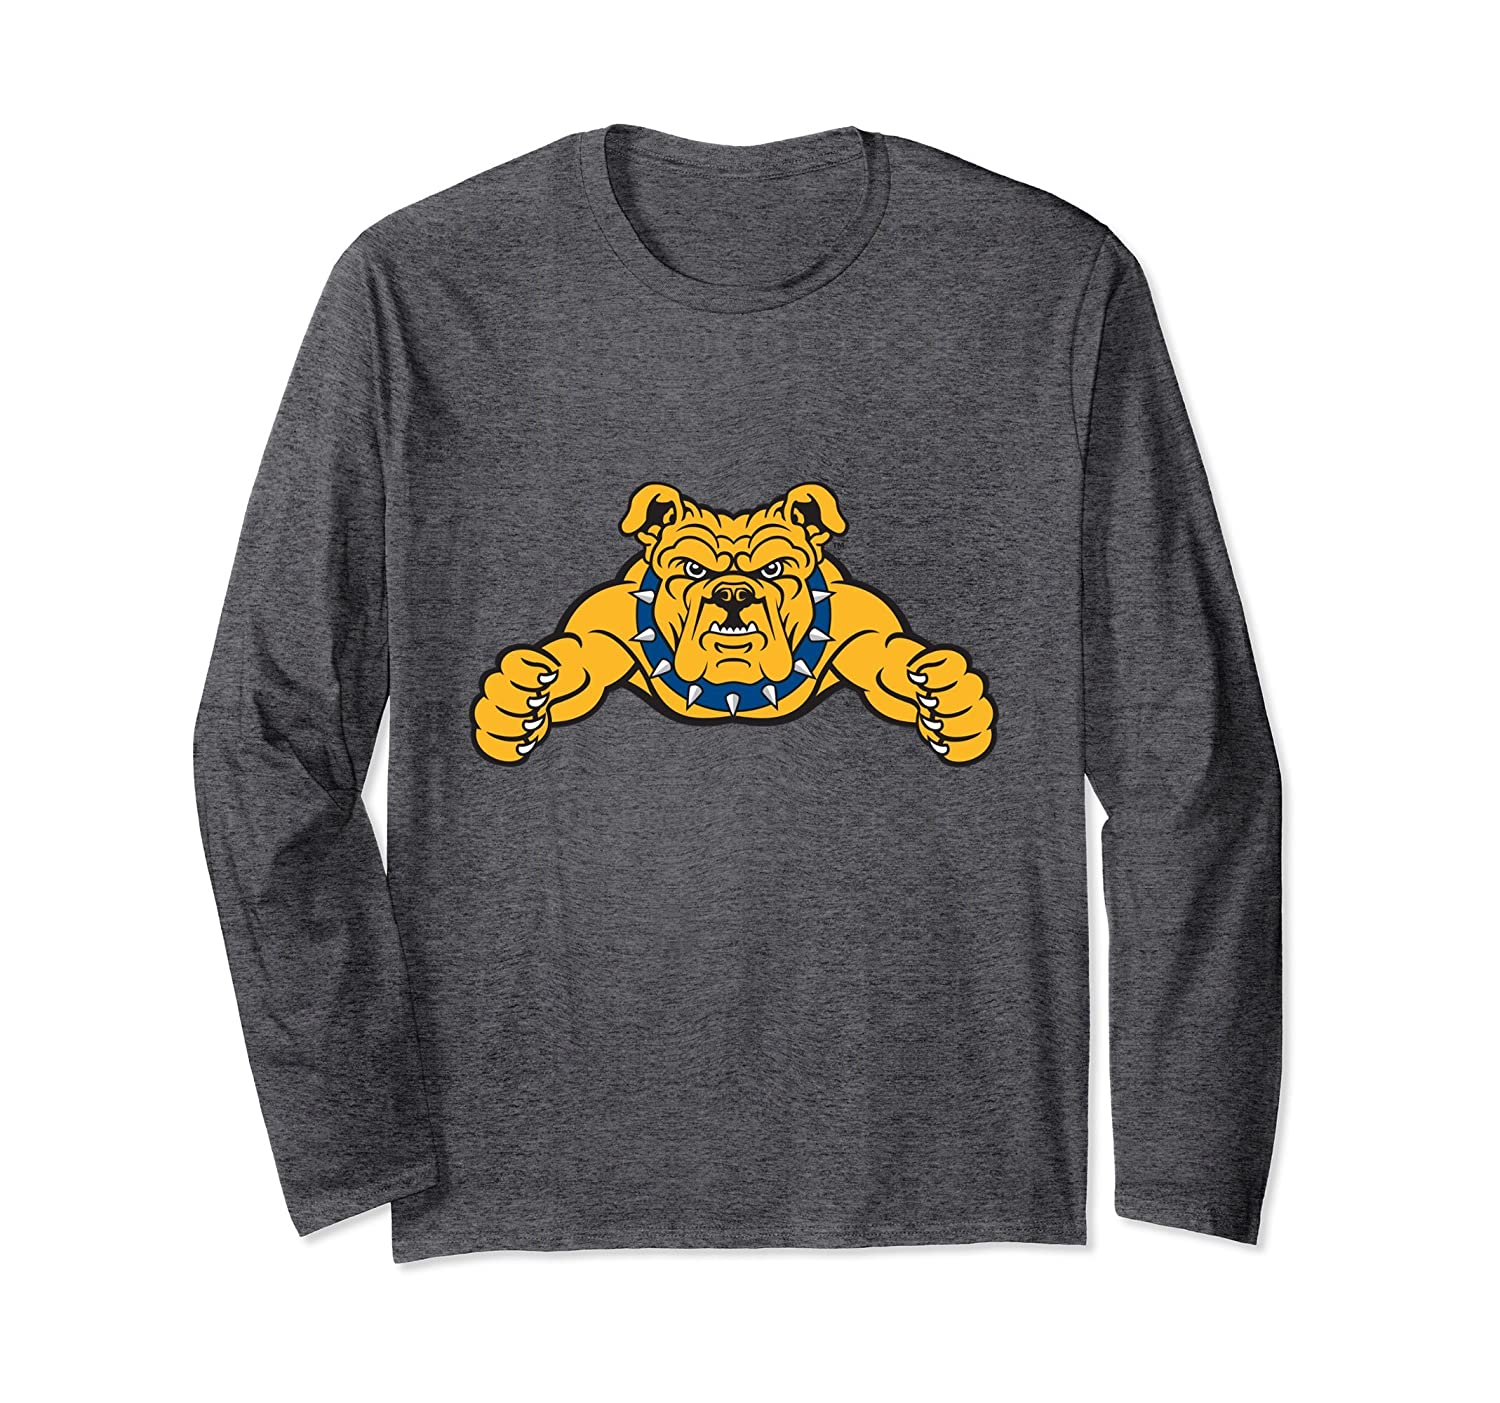 North Carolina A&T Aggies NCAA Long Sleeve 15NCTA-1-alottee gift